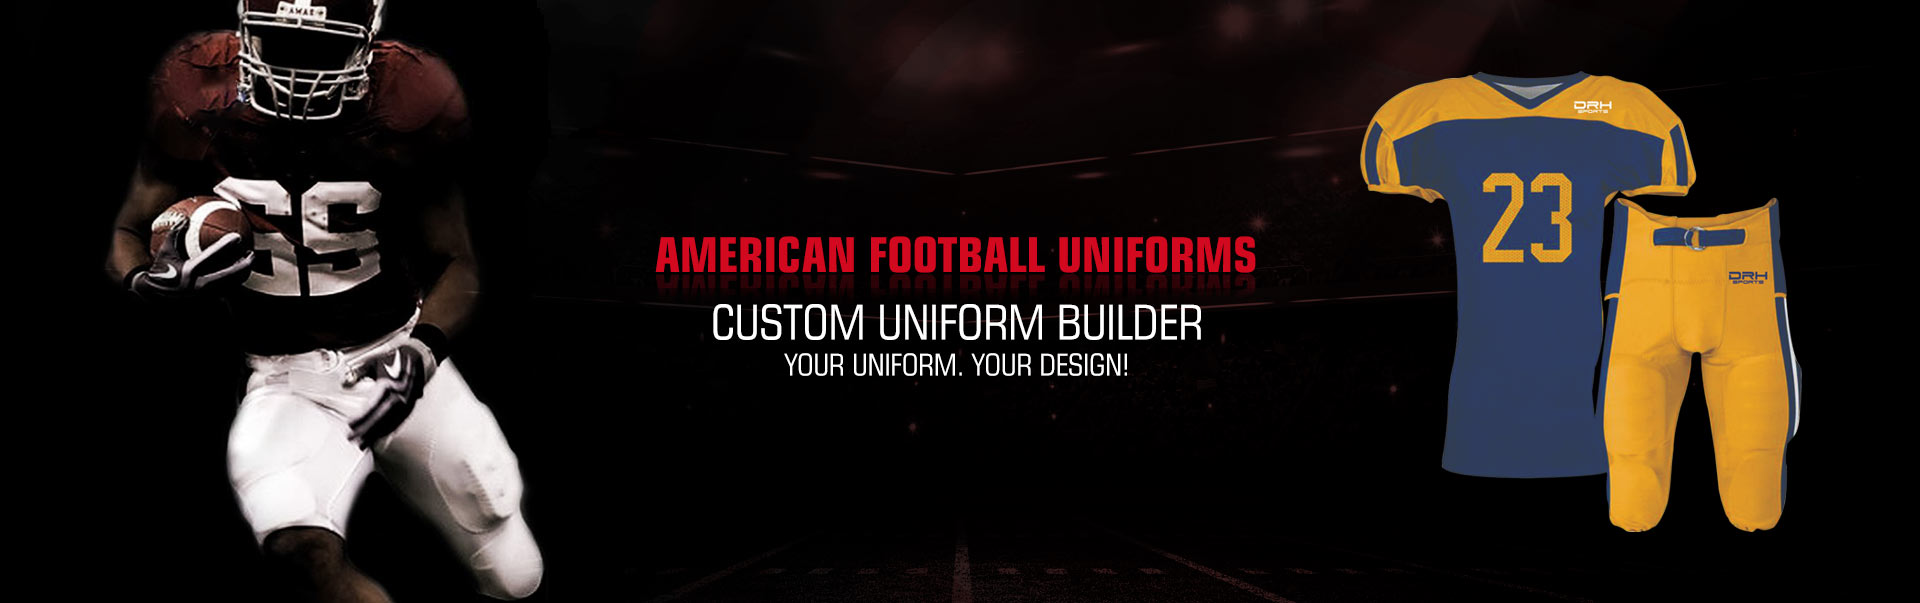 American Football Uniform Wholesaler, Suppliers in Erin